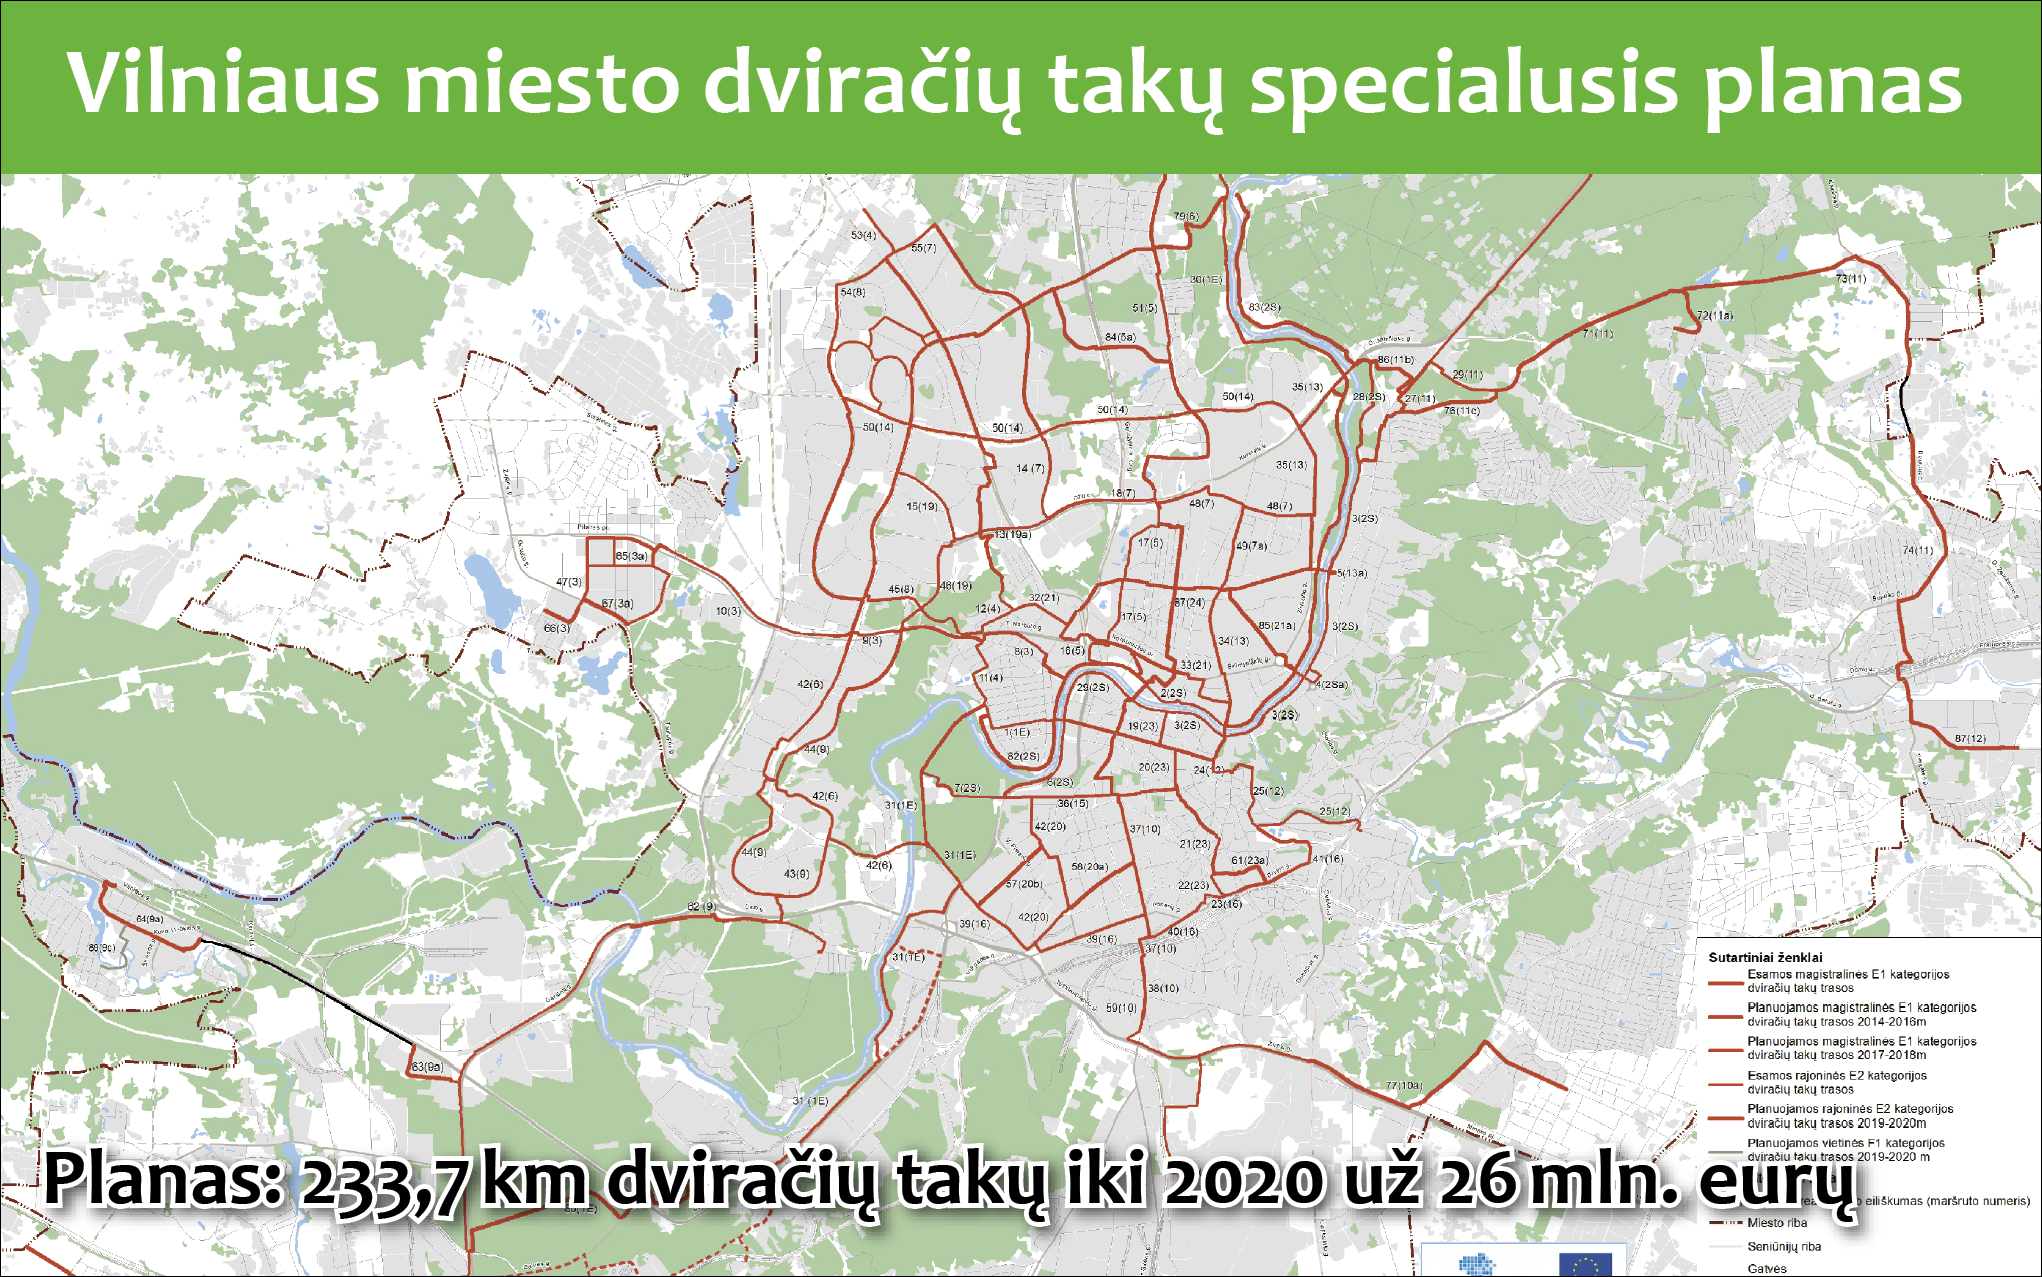 vilniaus-miesto-dviraciu-taku-specialusis-planas